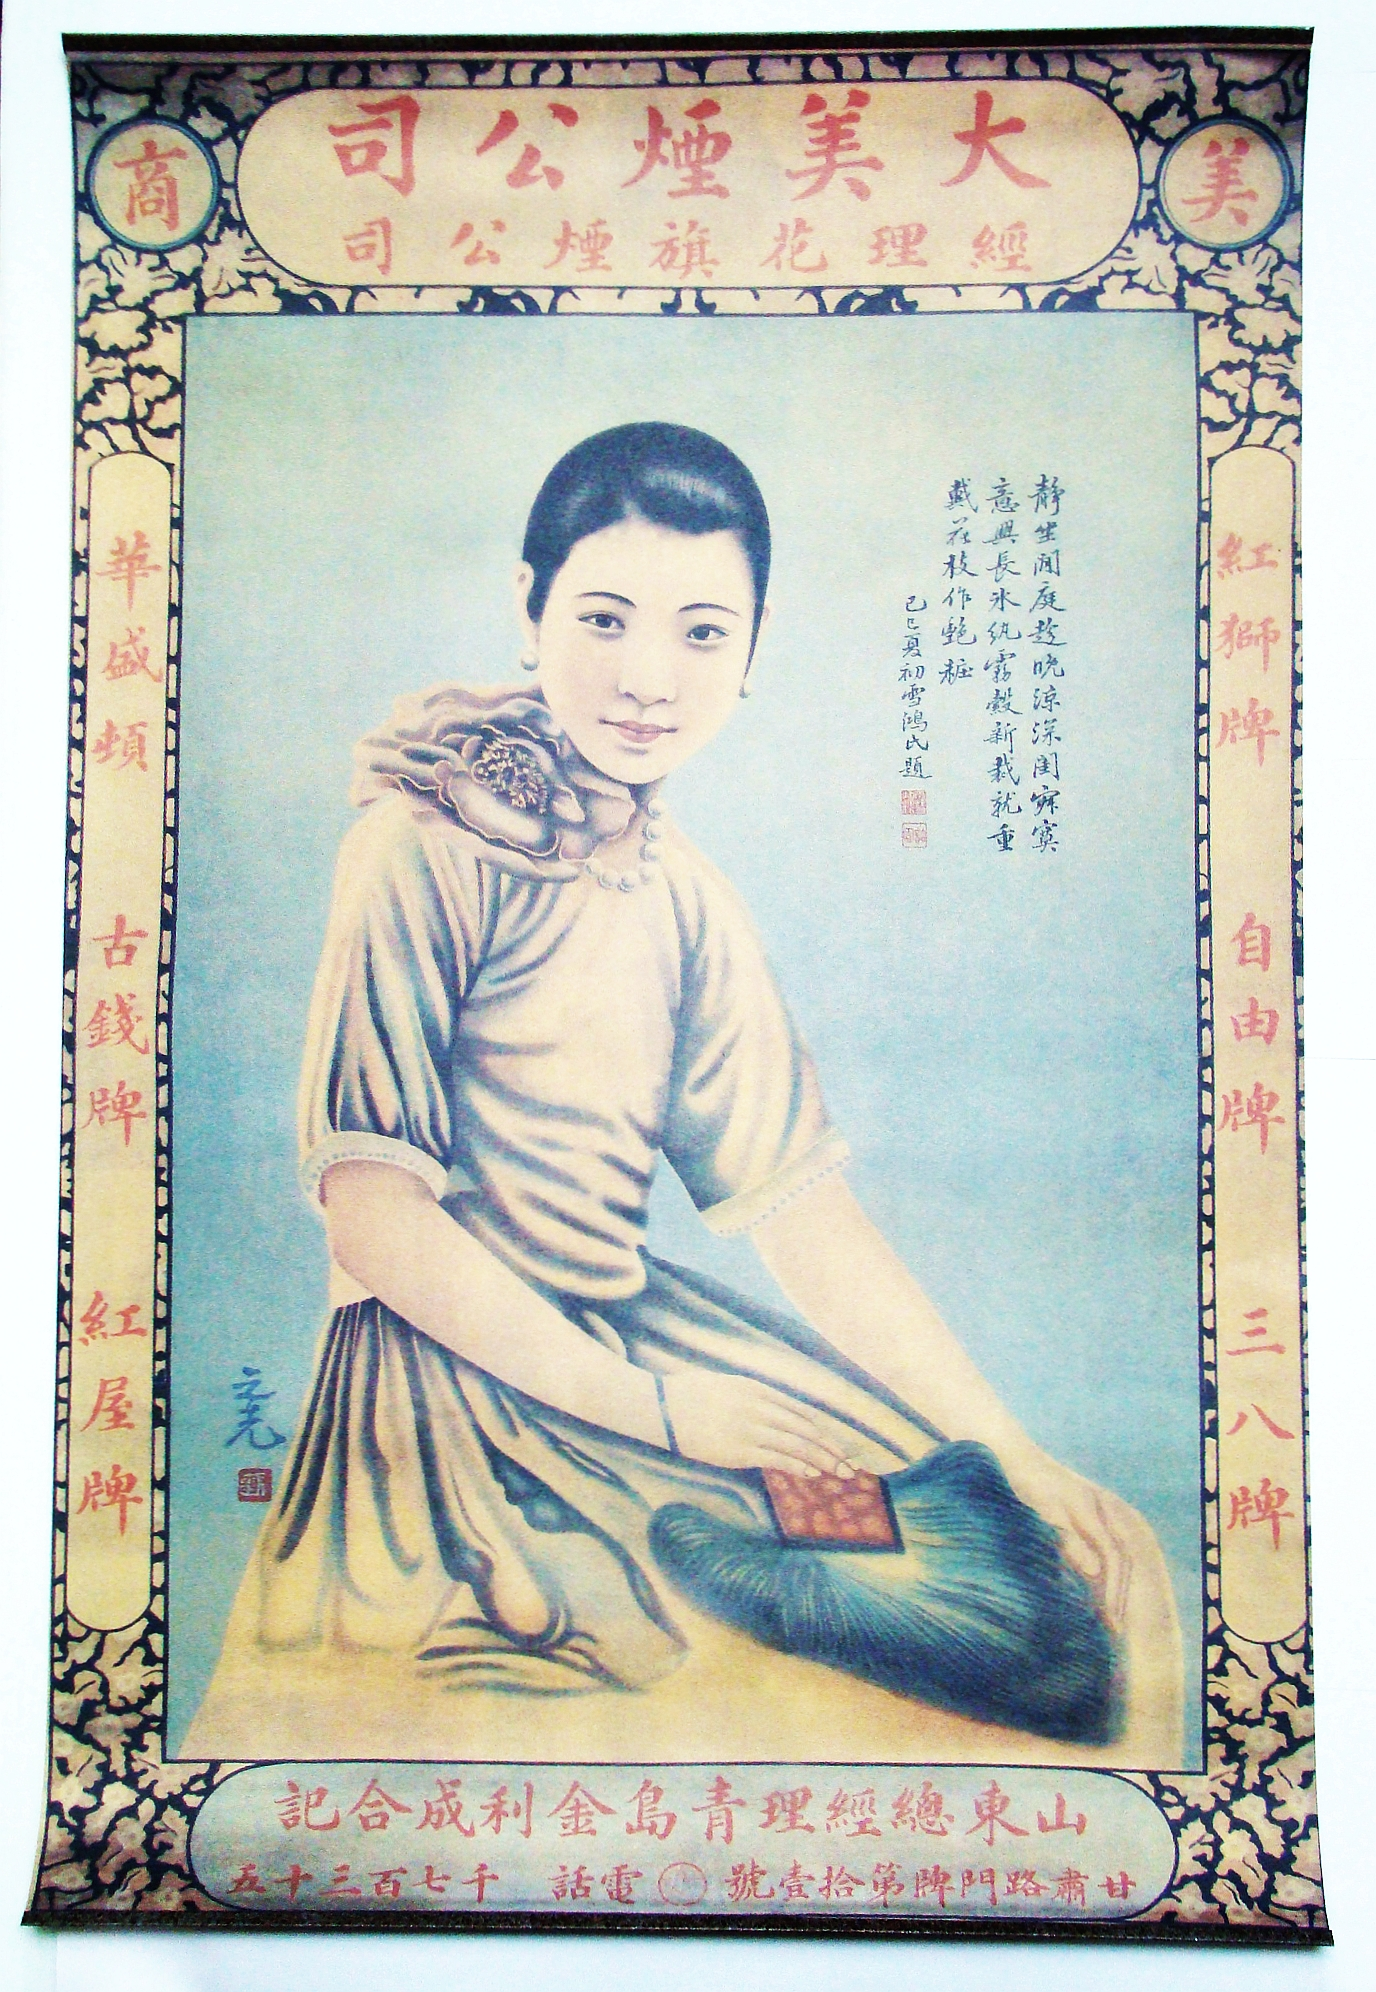 Image for Chinese / Shanghai Replica Advertising Poster - Elegantly-Dressed Young Lady